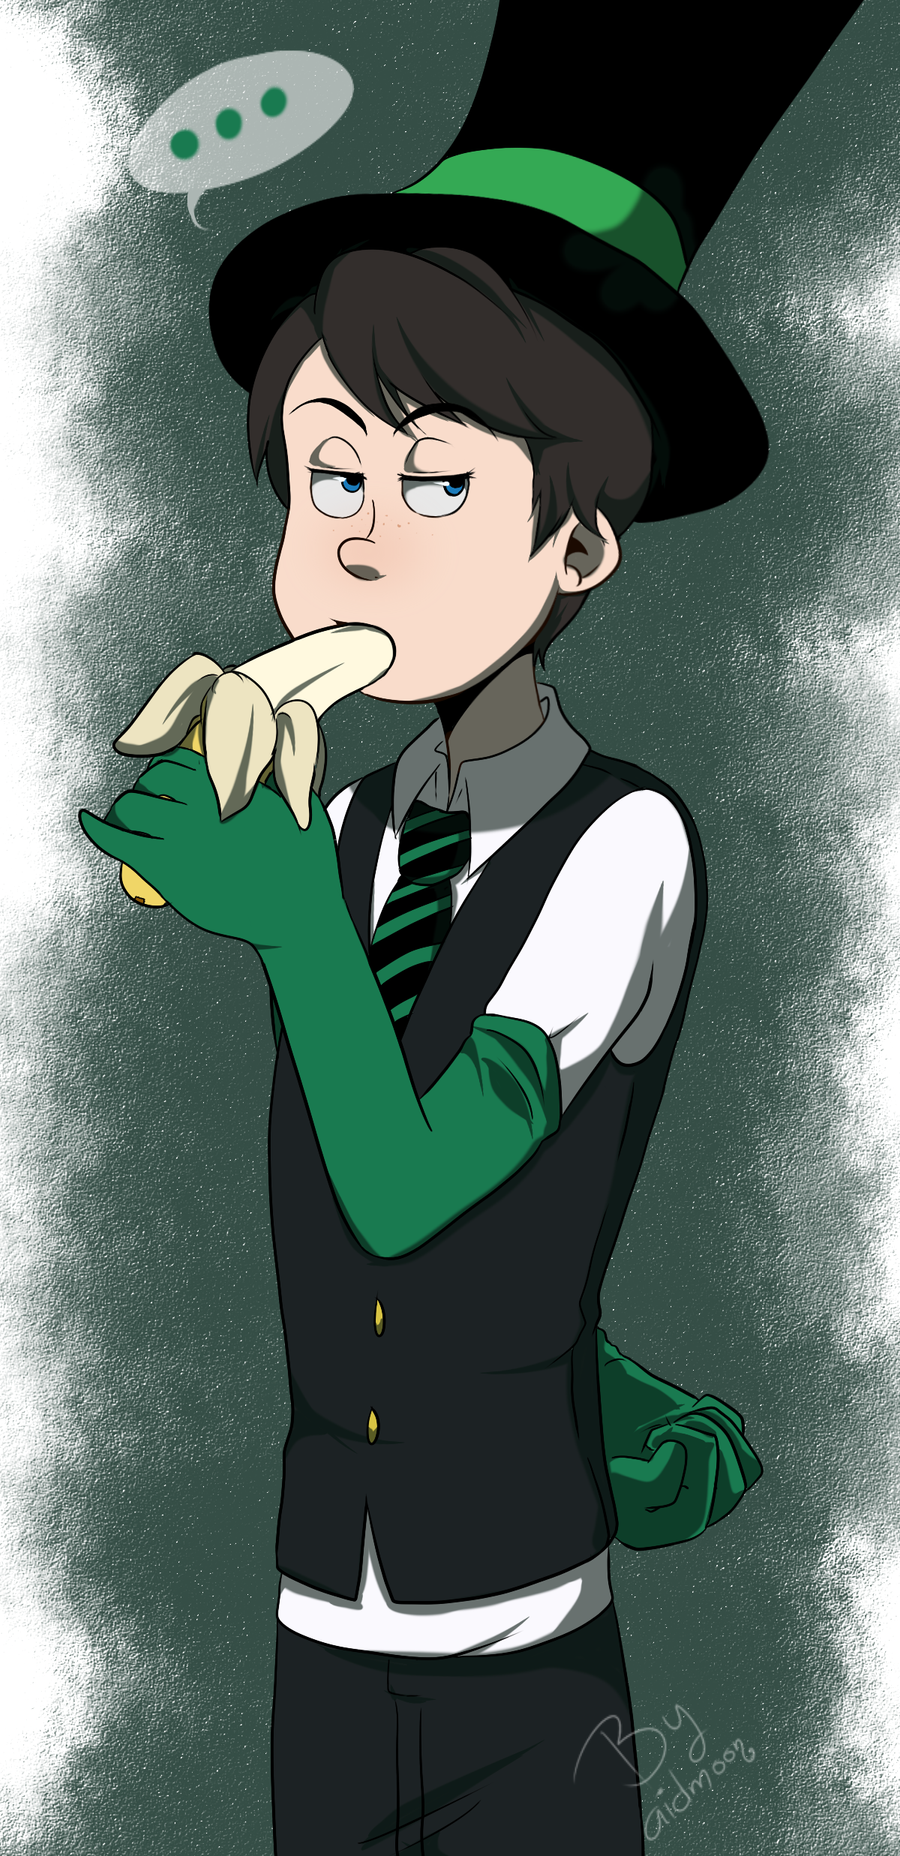 Eating banana [The lorax] by aidmoon